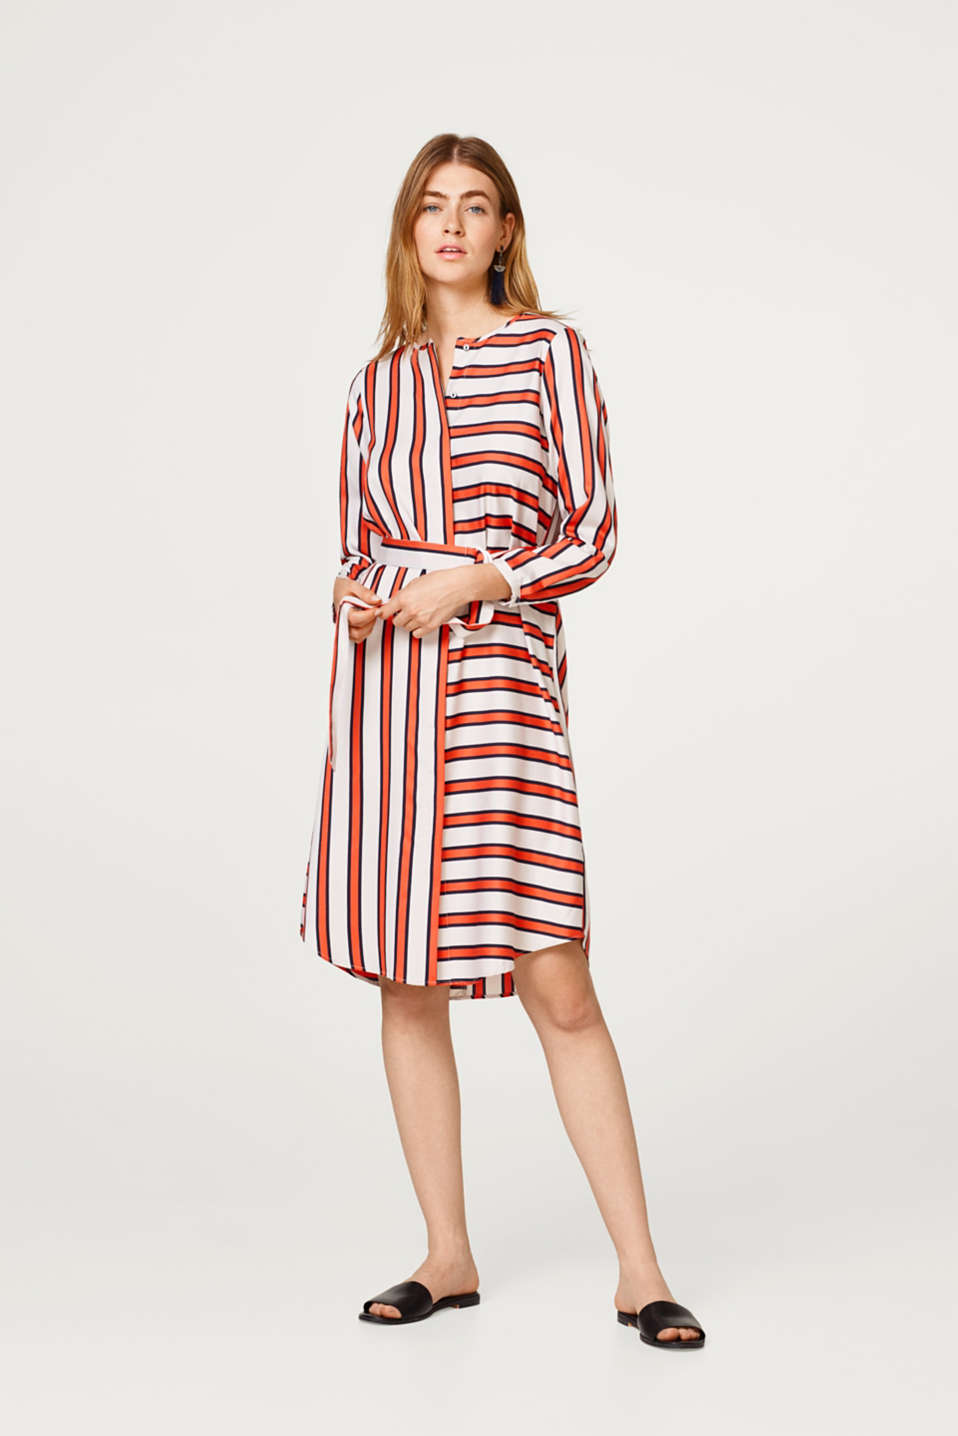 Esprit - Soft midi length dress in a new striped look